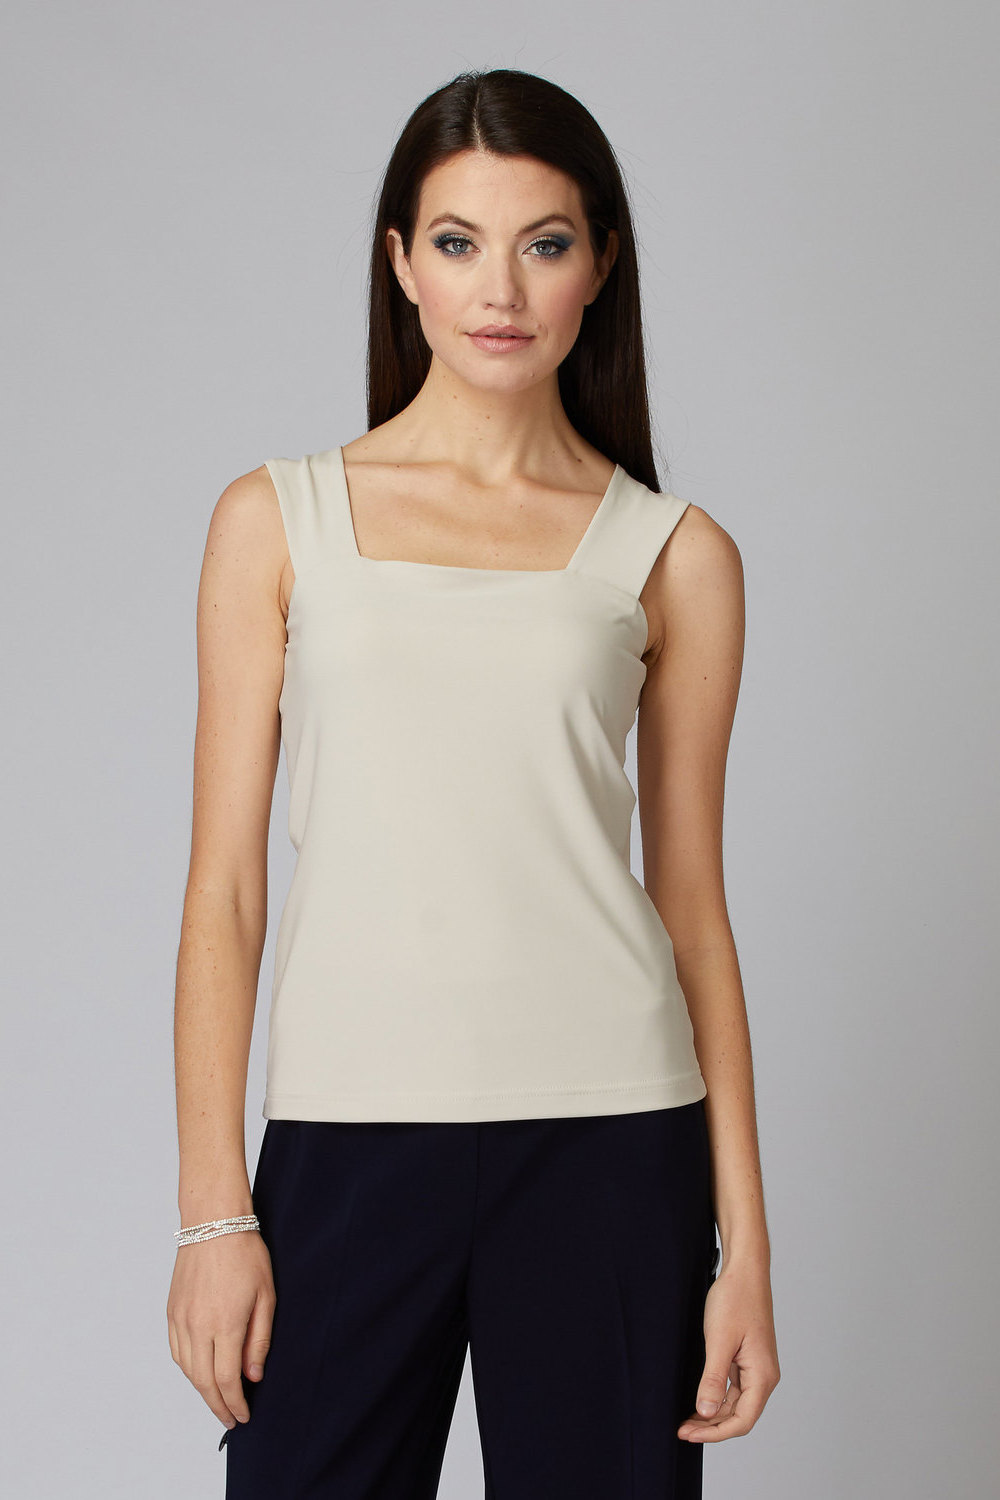 Joseph Ribkoff Champagne 171 Tees & Camis Style 143132